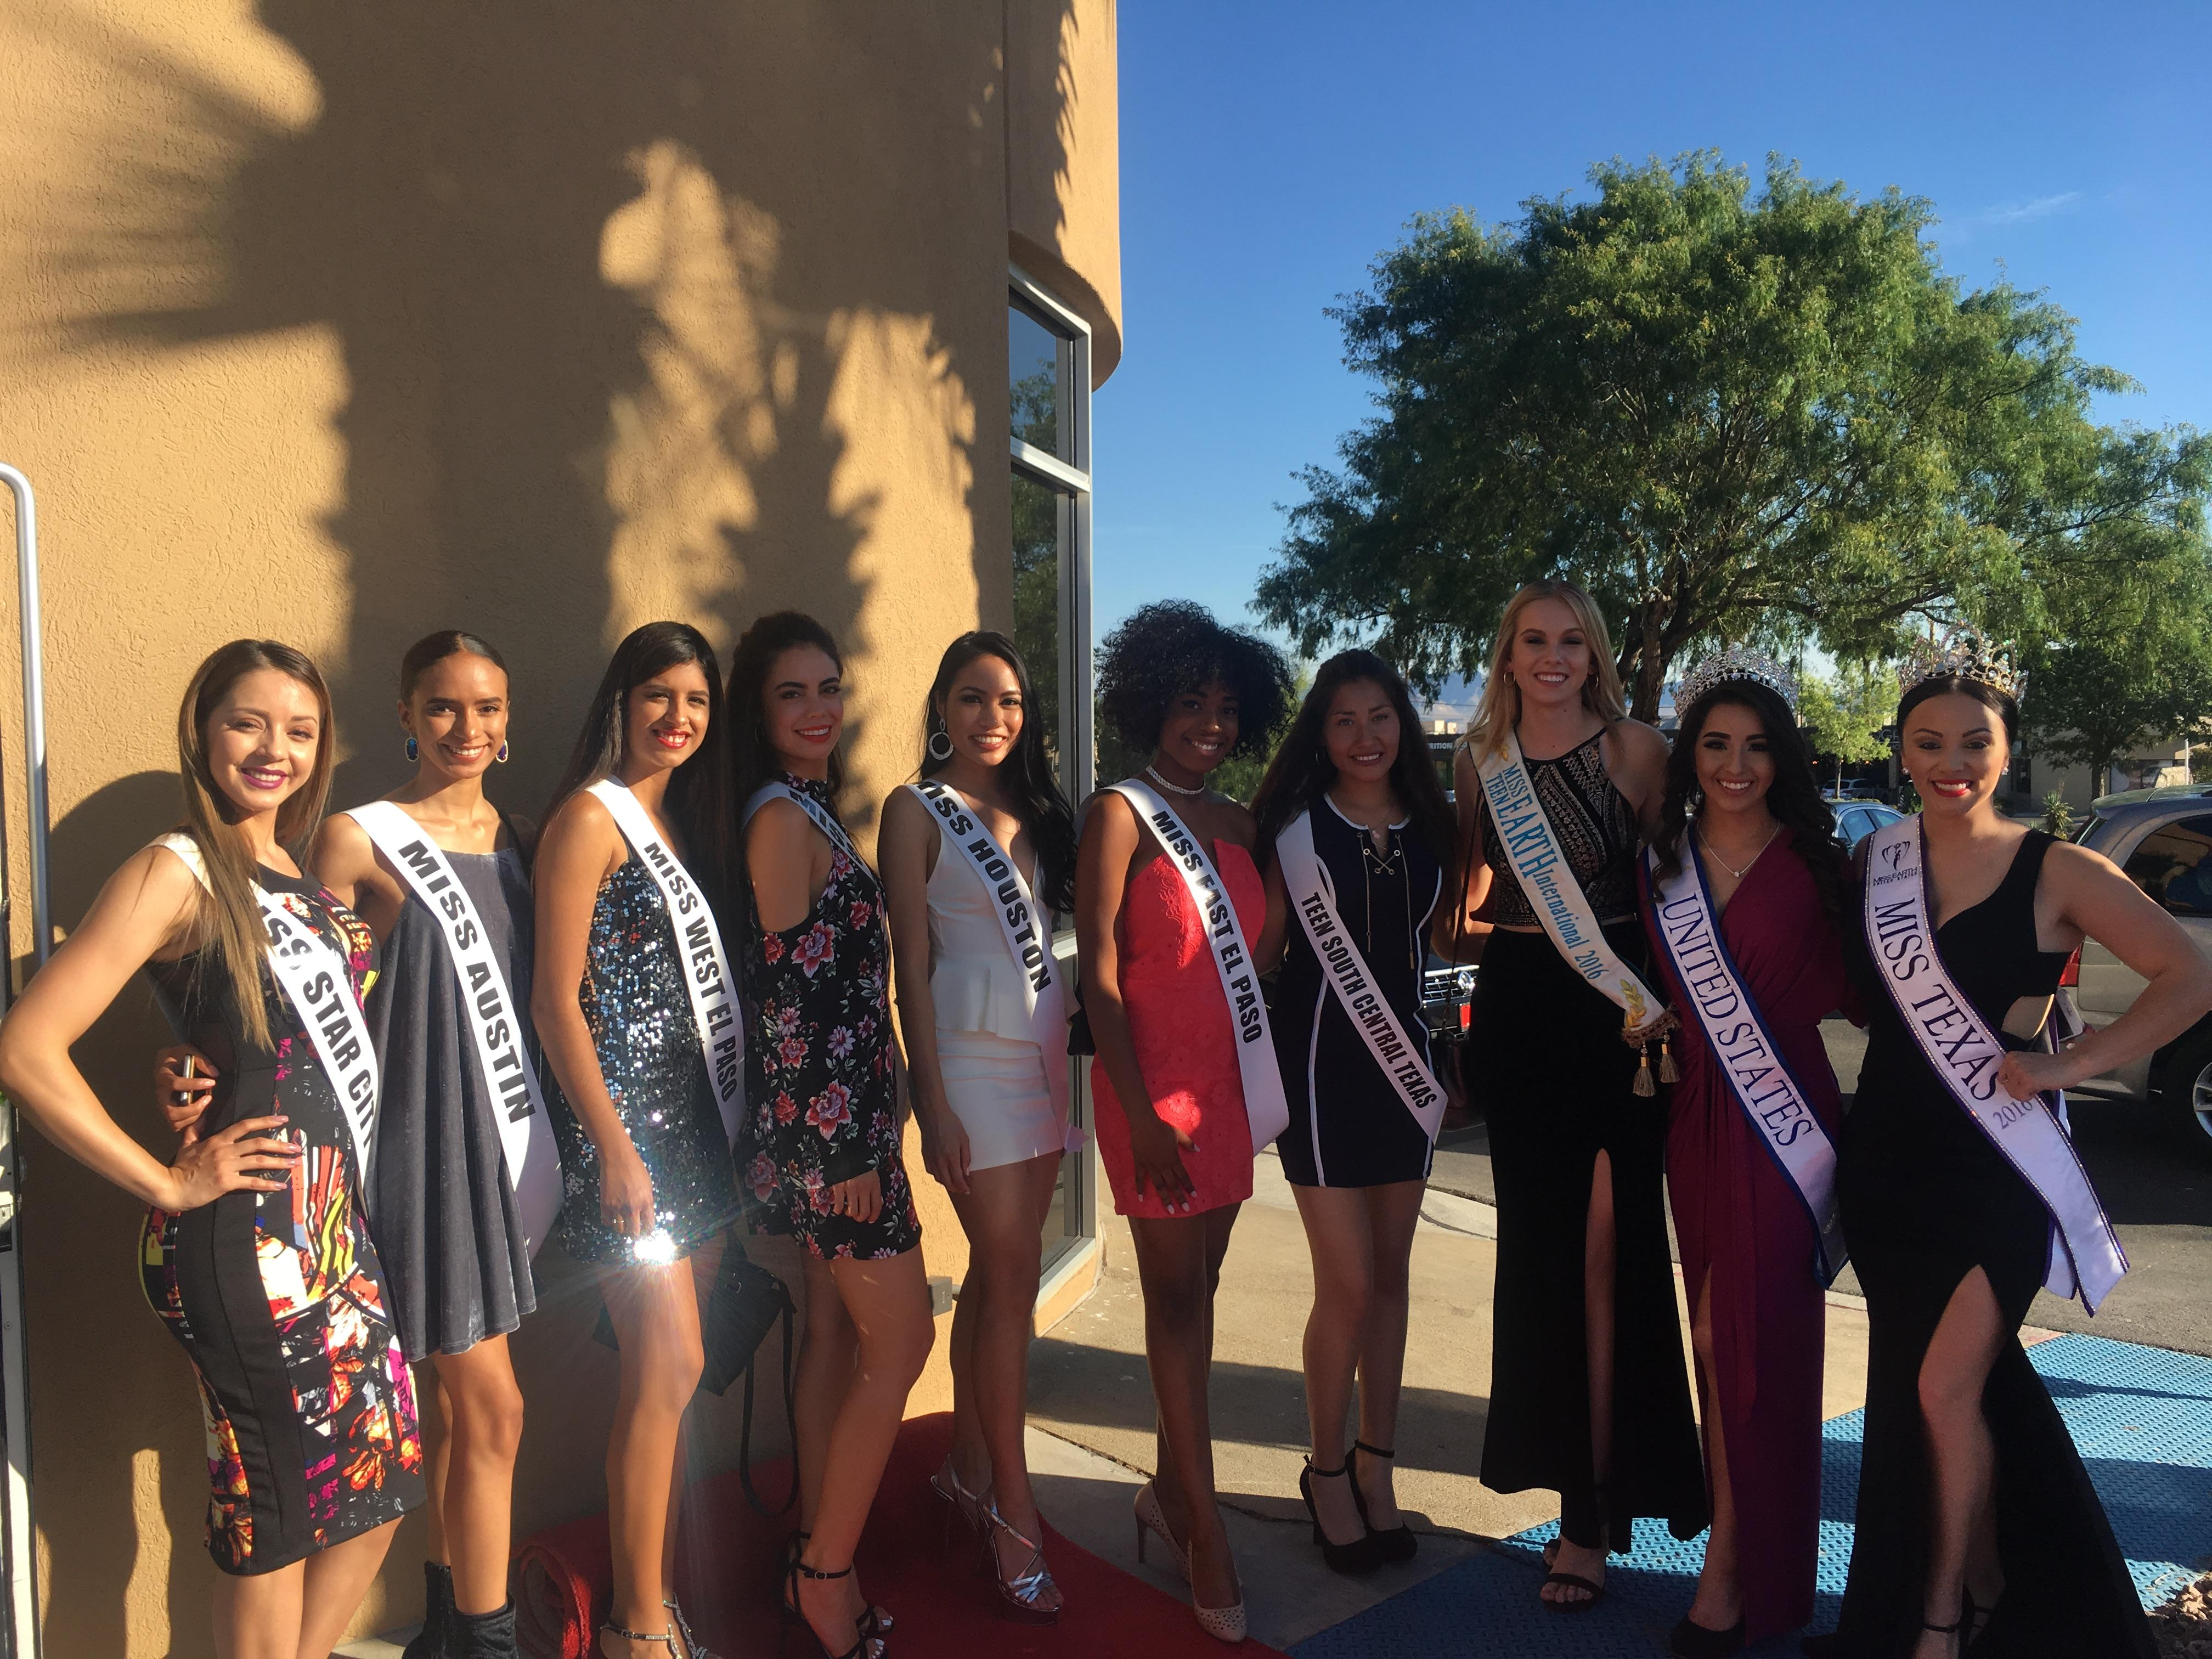 The first wave of contestants vying for the titles of Miss Texas Earth and Teen Miss Texas Earth walk the red carpet at Cafe Grille.